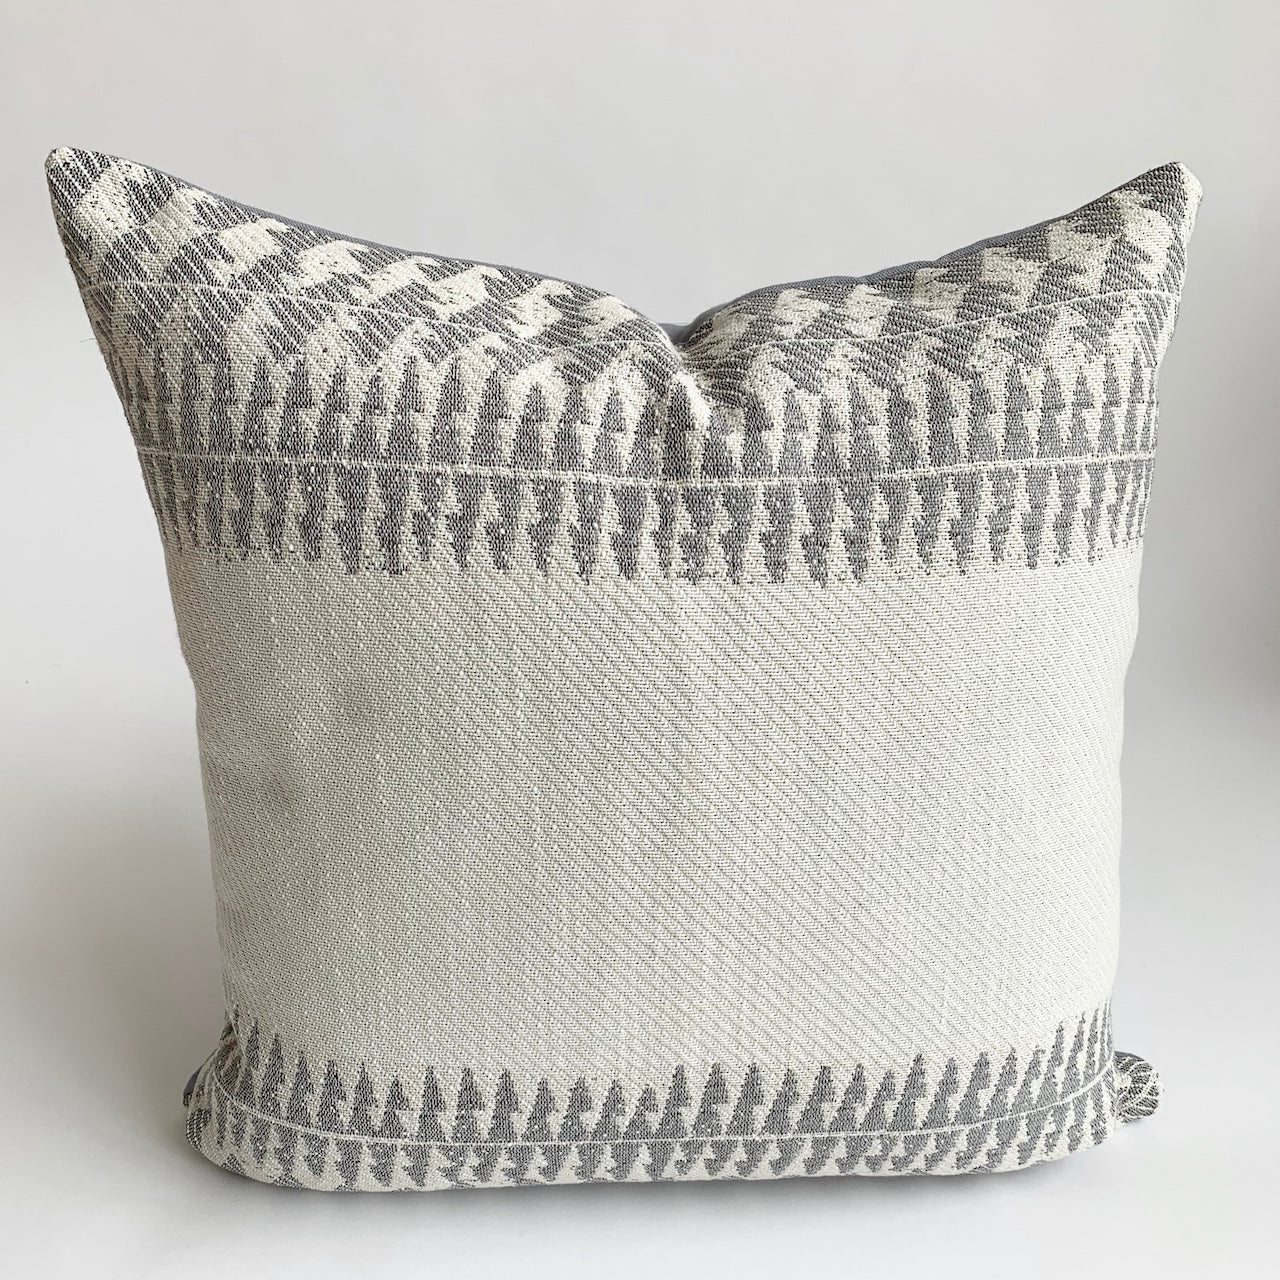 Padma Pillow, Ivory $155